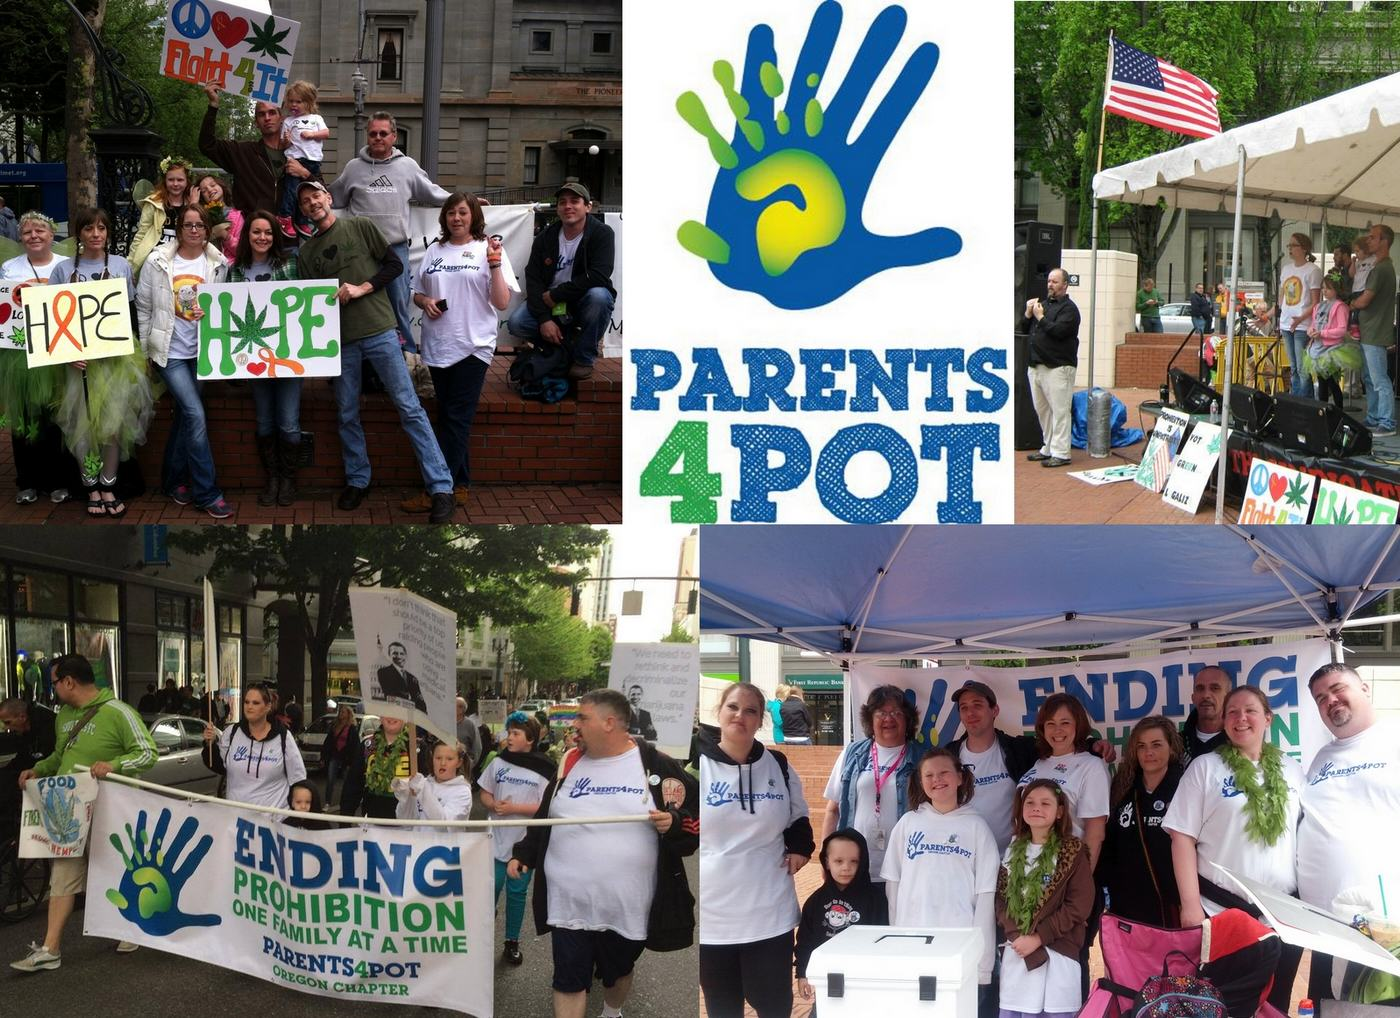 Association Parents4Pot